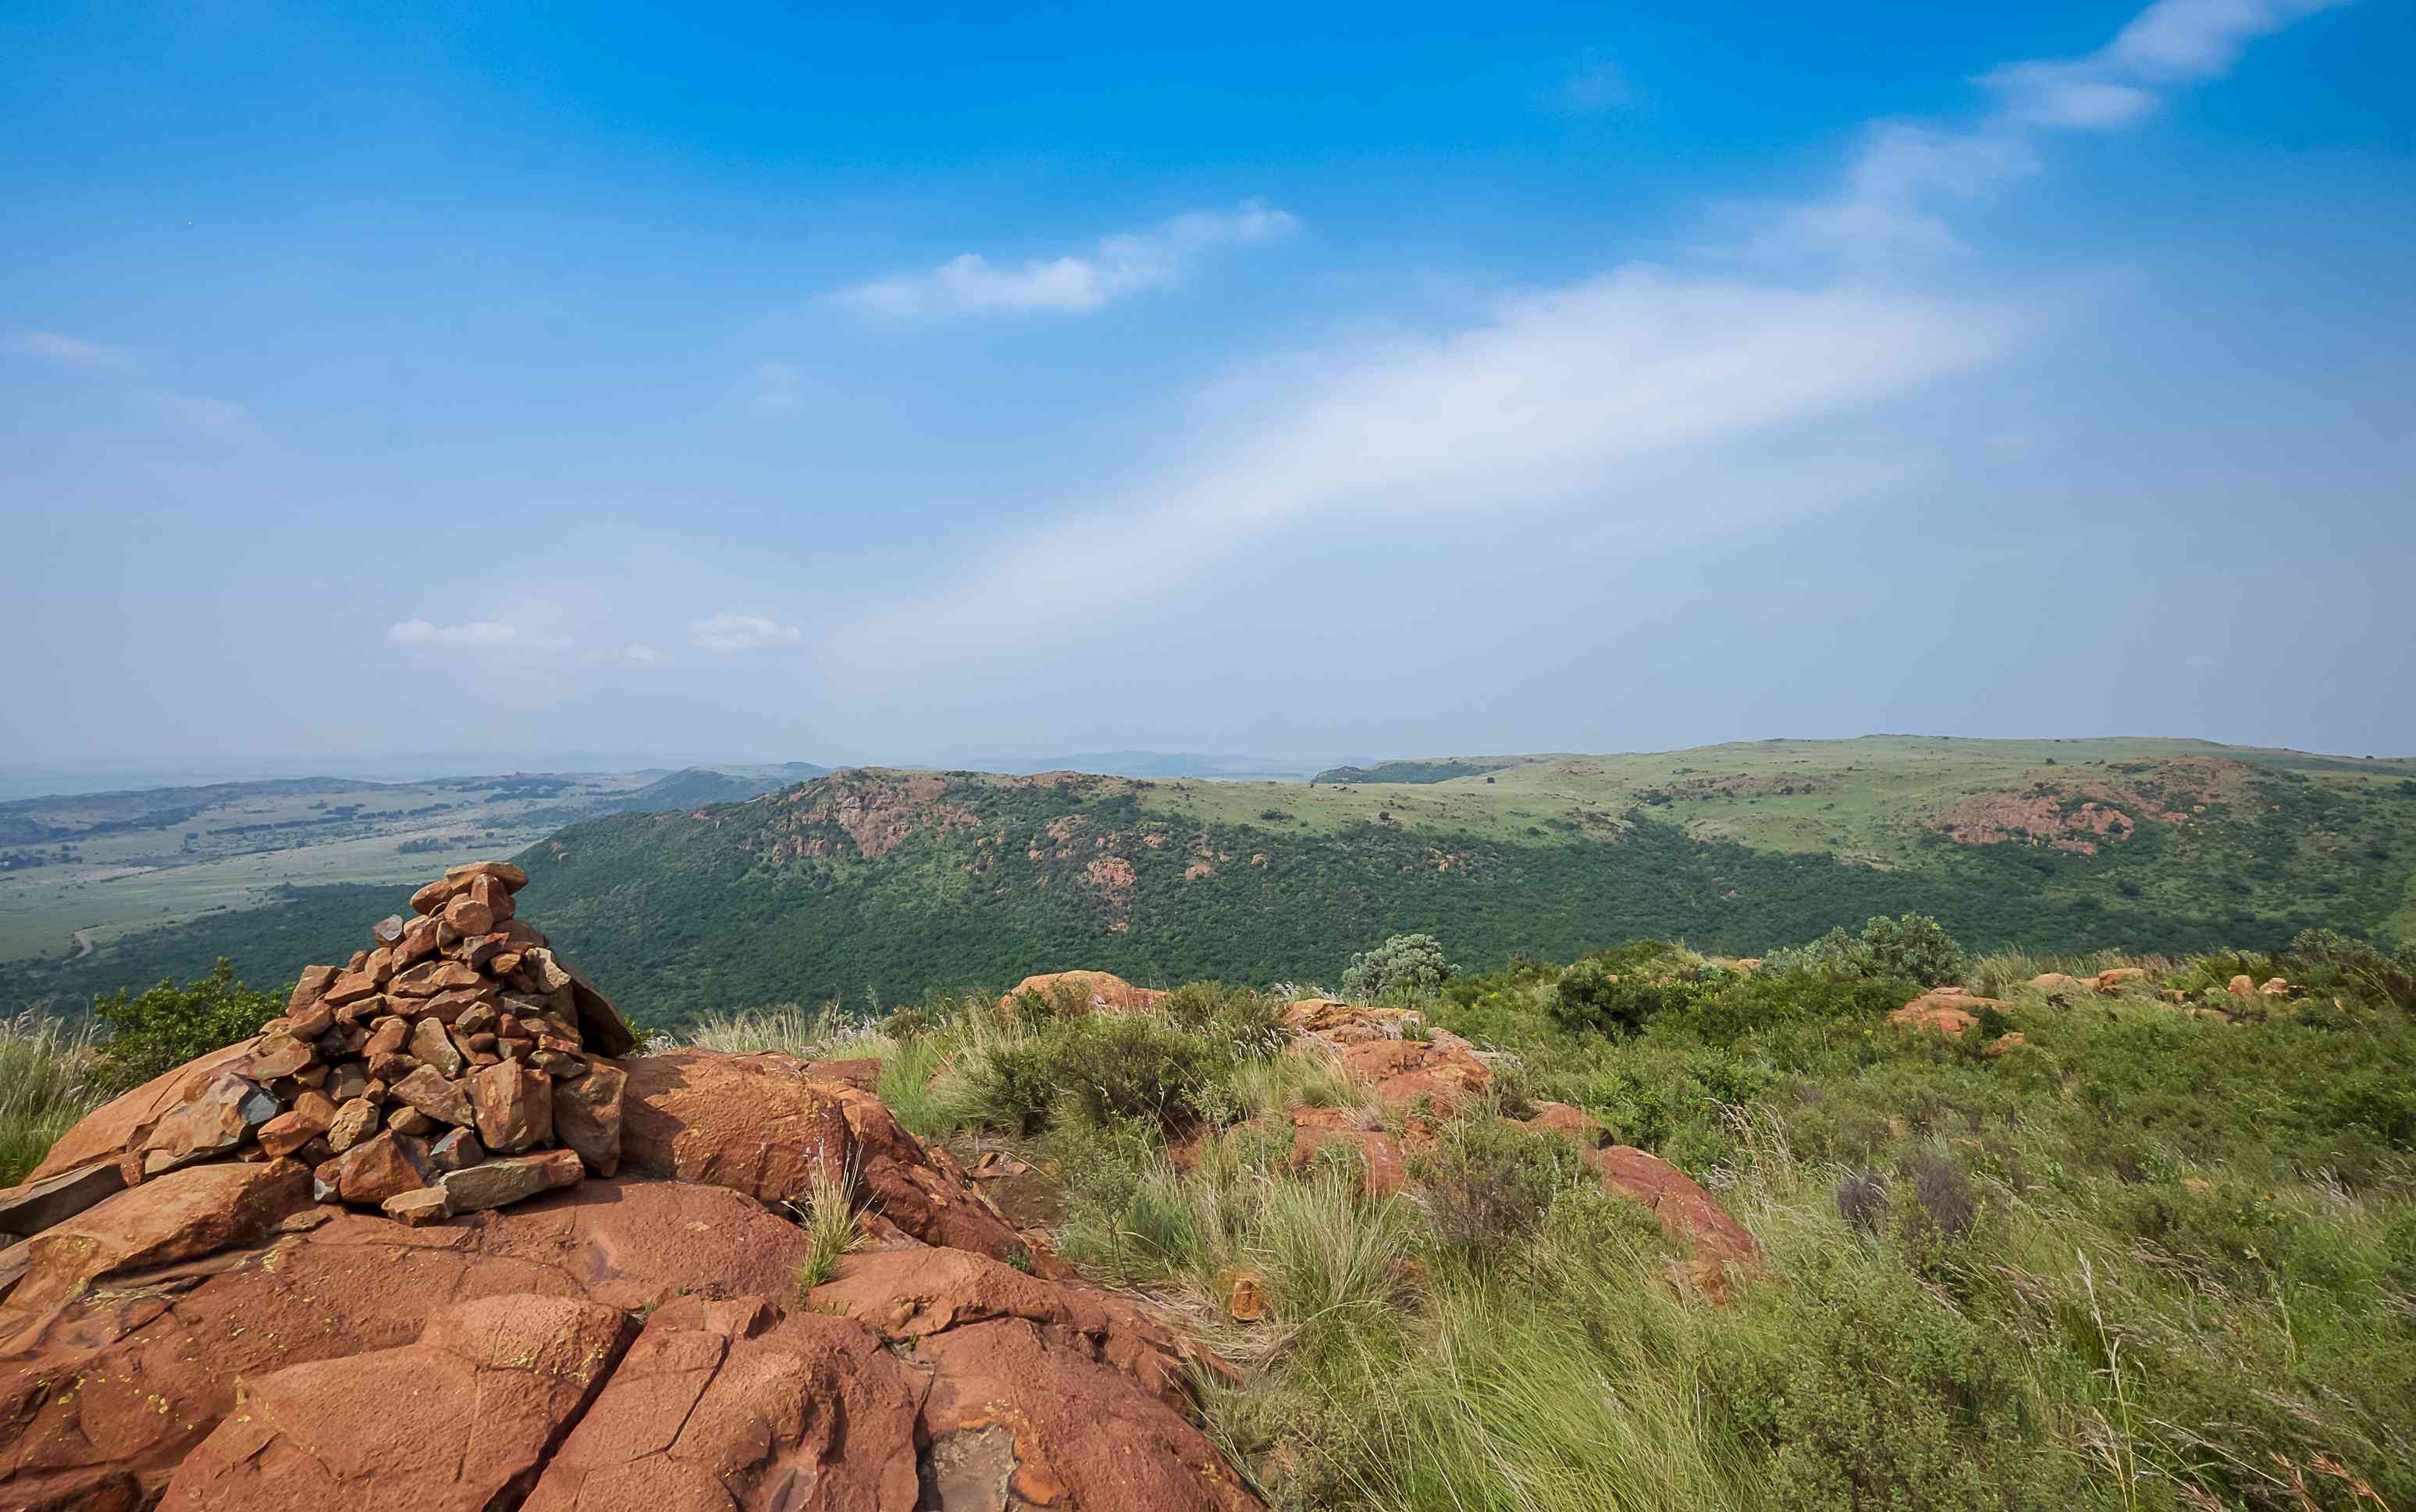 Suikerbosrand Nature Reserve is a protected area south of Johannesburg and is a popular destination for hiking, cycling and game viewing